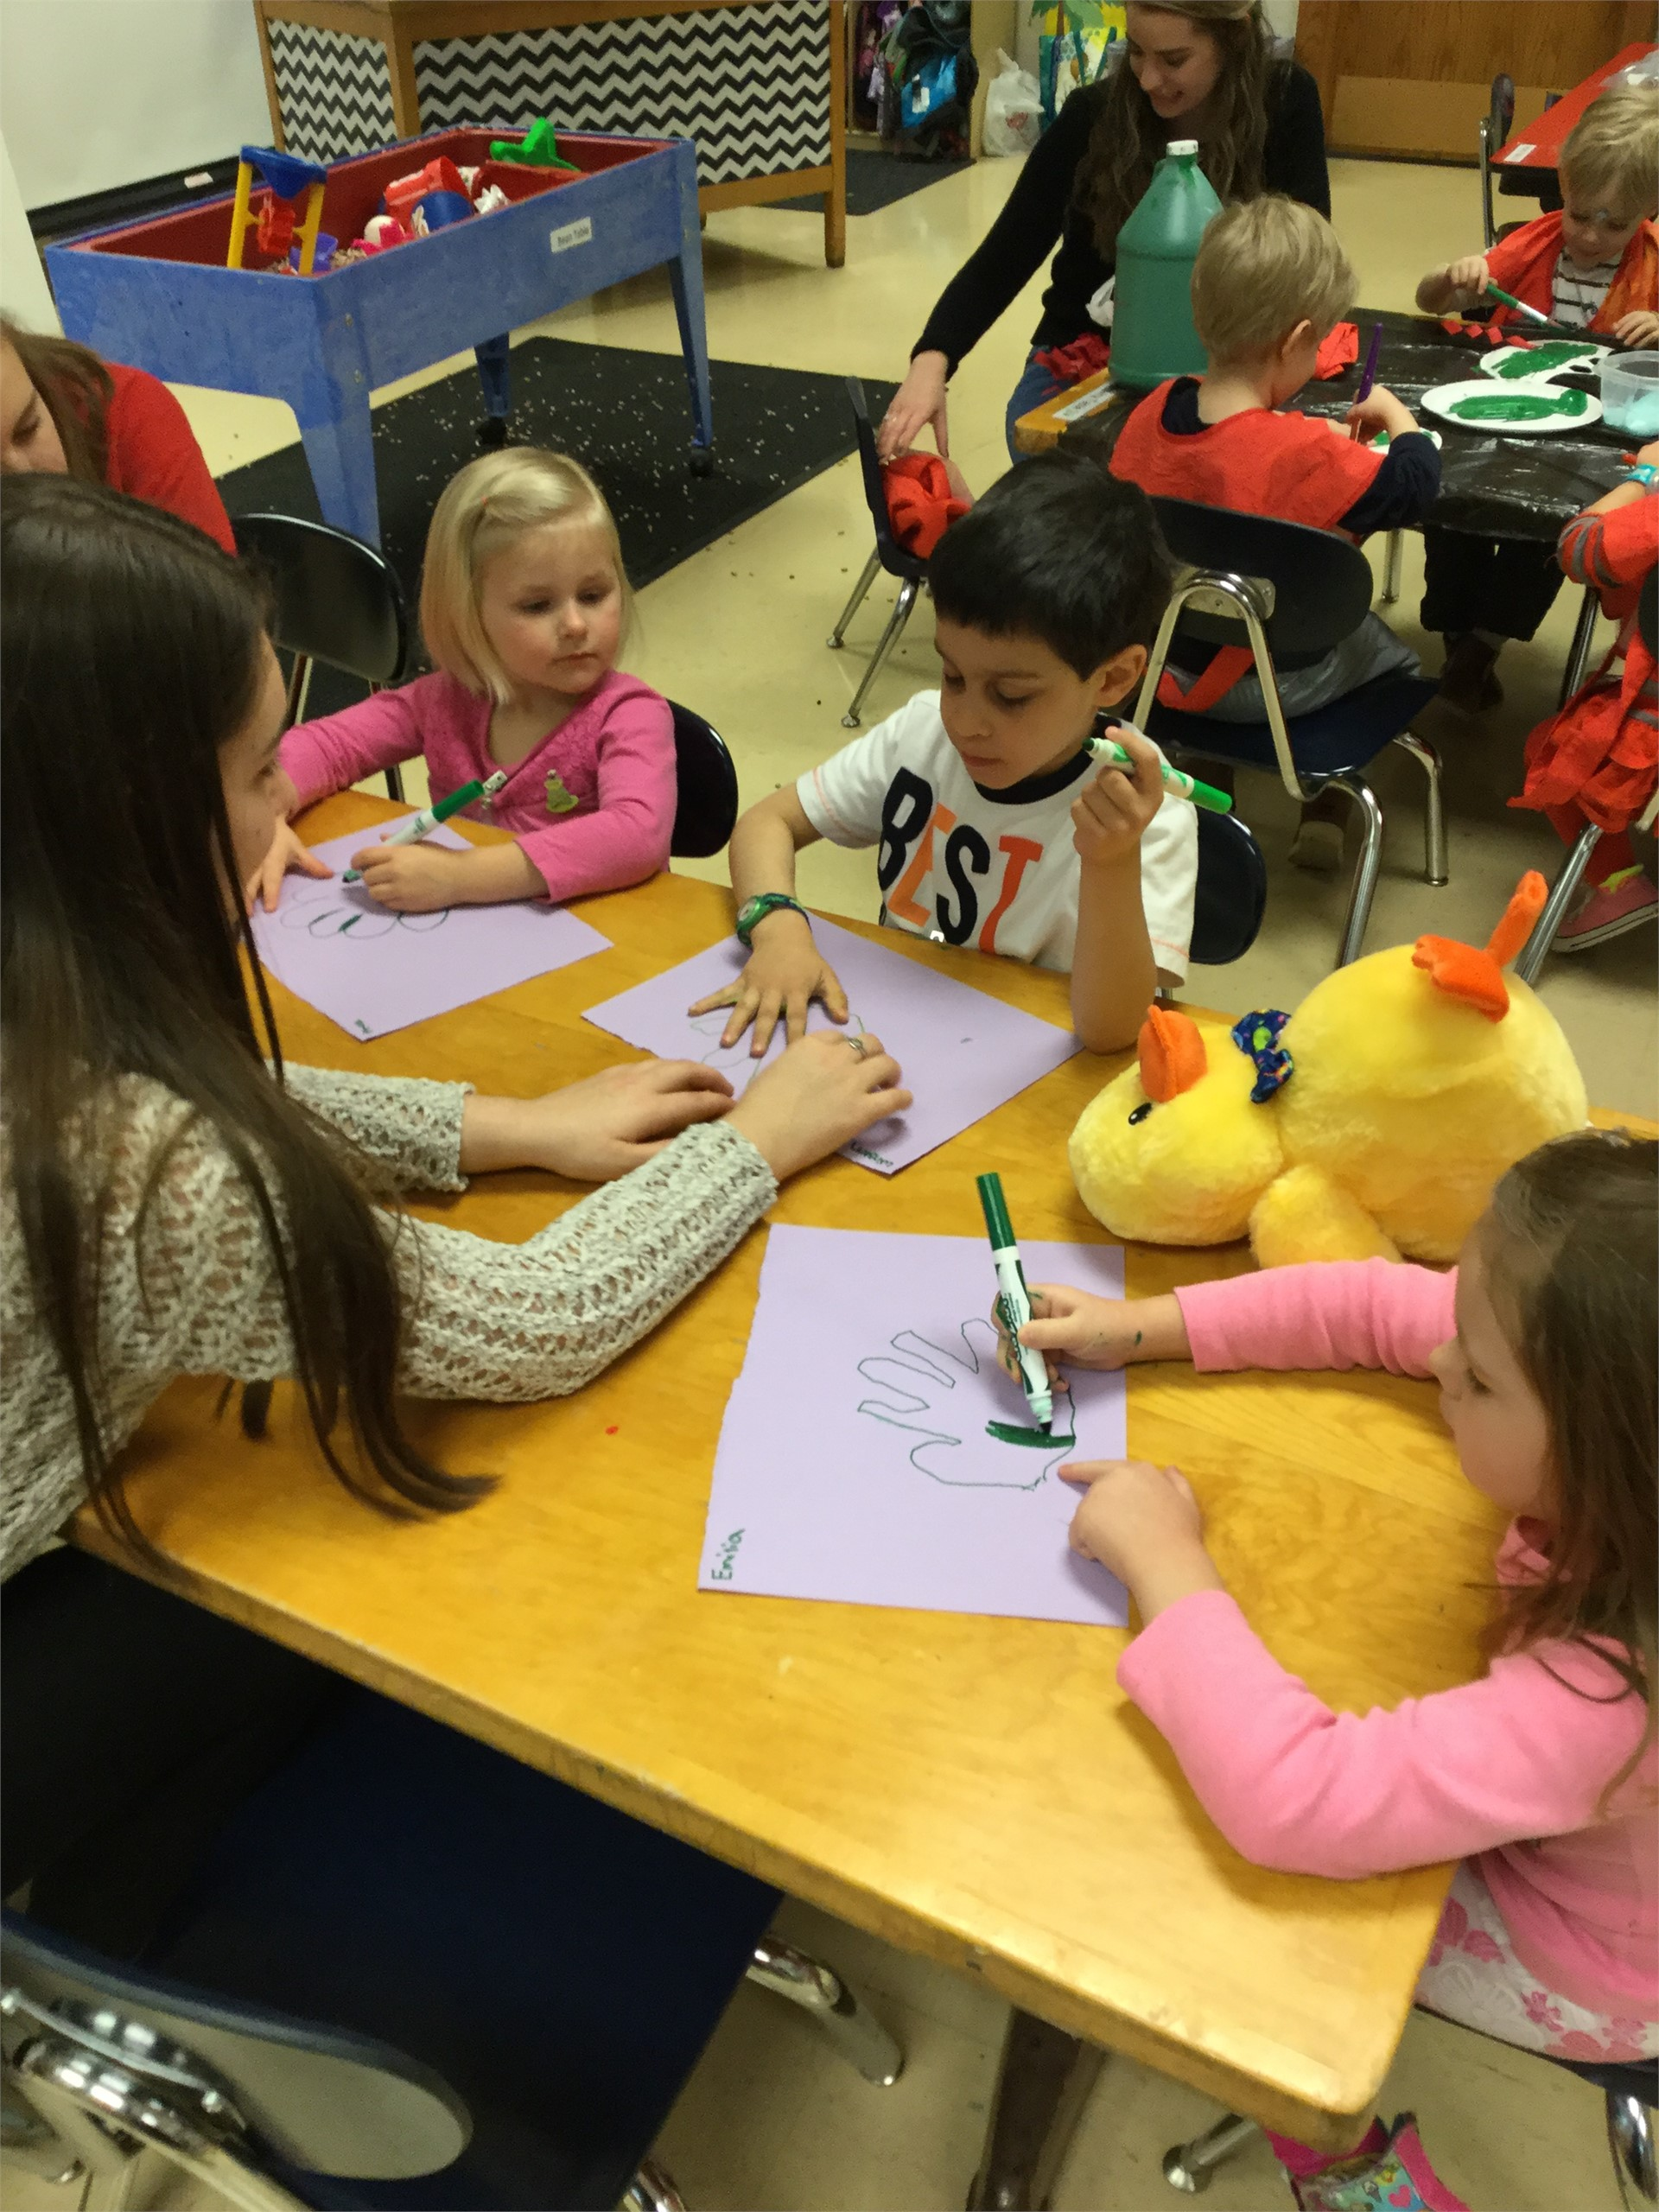 Geneva 304 Students Enjoy a Day with STEM Activities